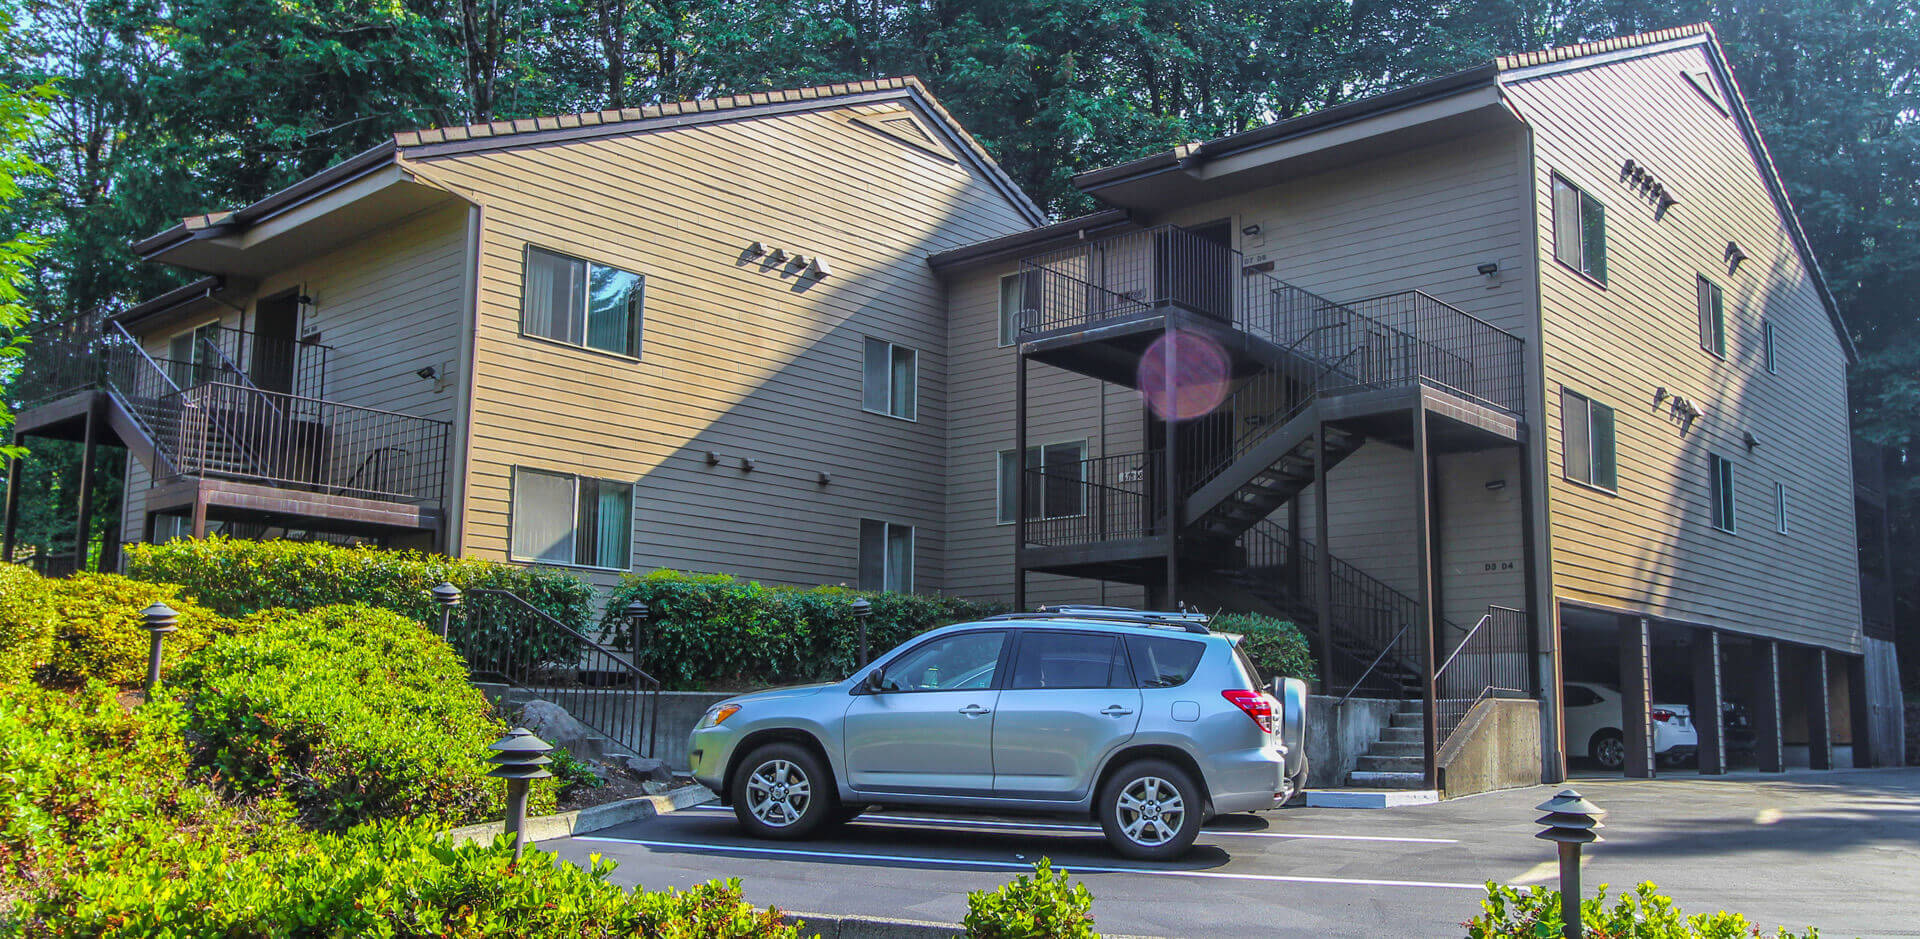 An exterior building view at VRI's Whispering Woods Resort in Oregon.